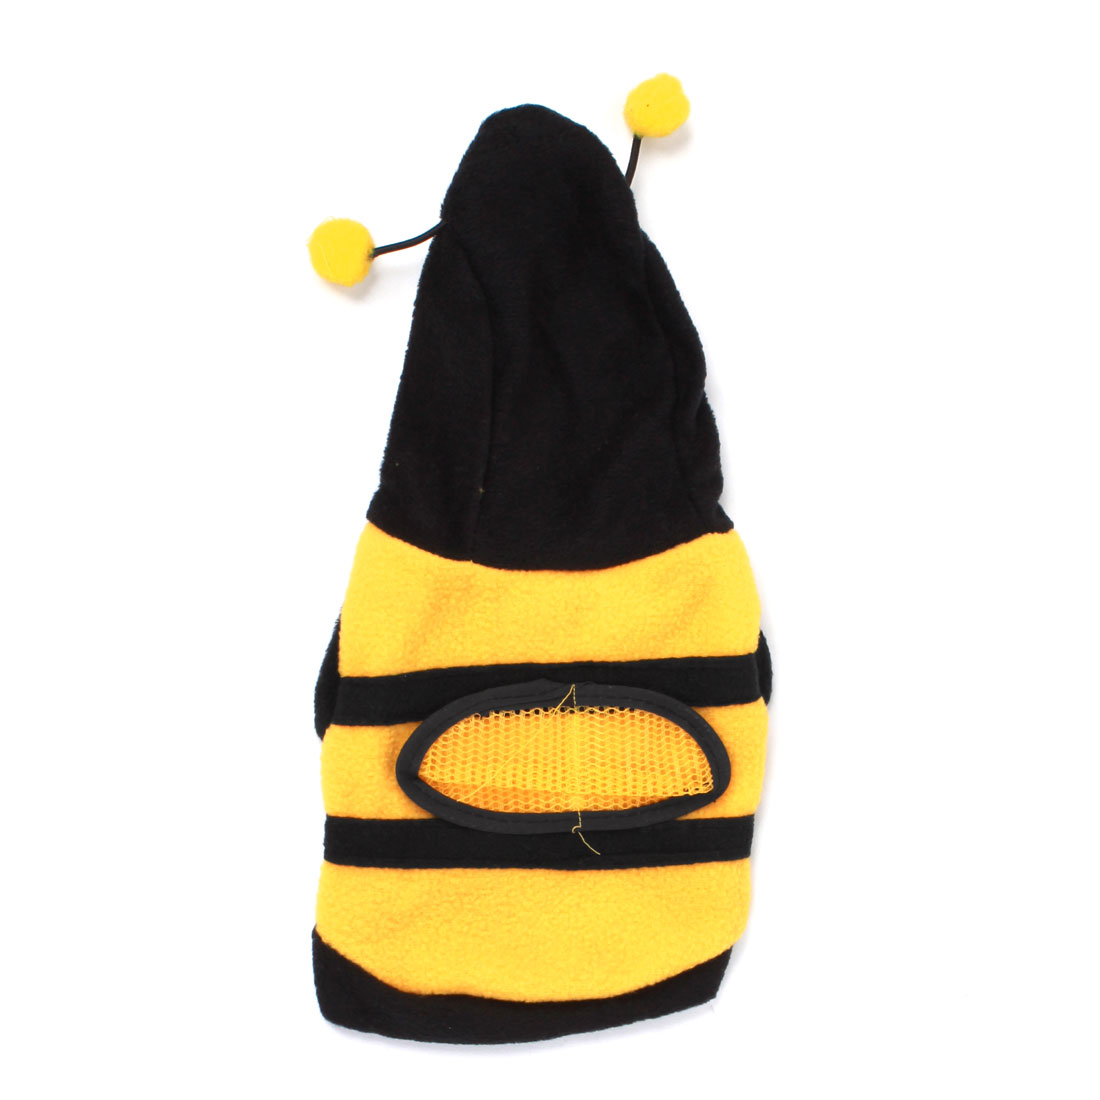 Single Breasted Bee Design Pet Dog Puppy Apparel Coat Black Yellow Size XXS